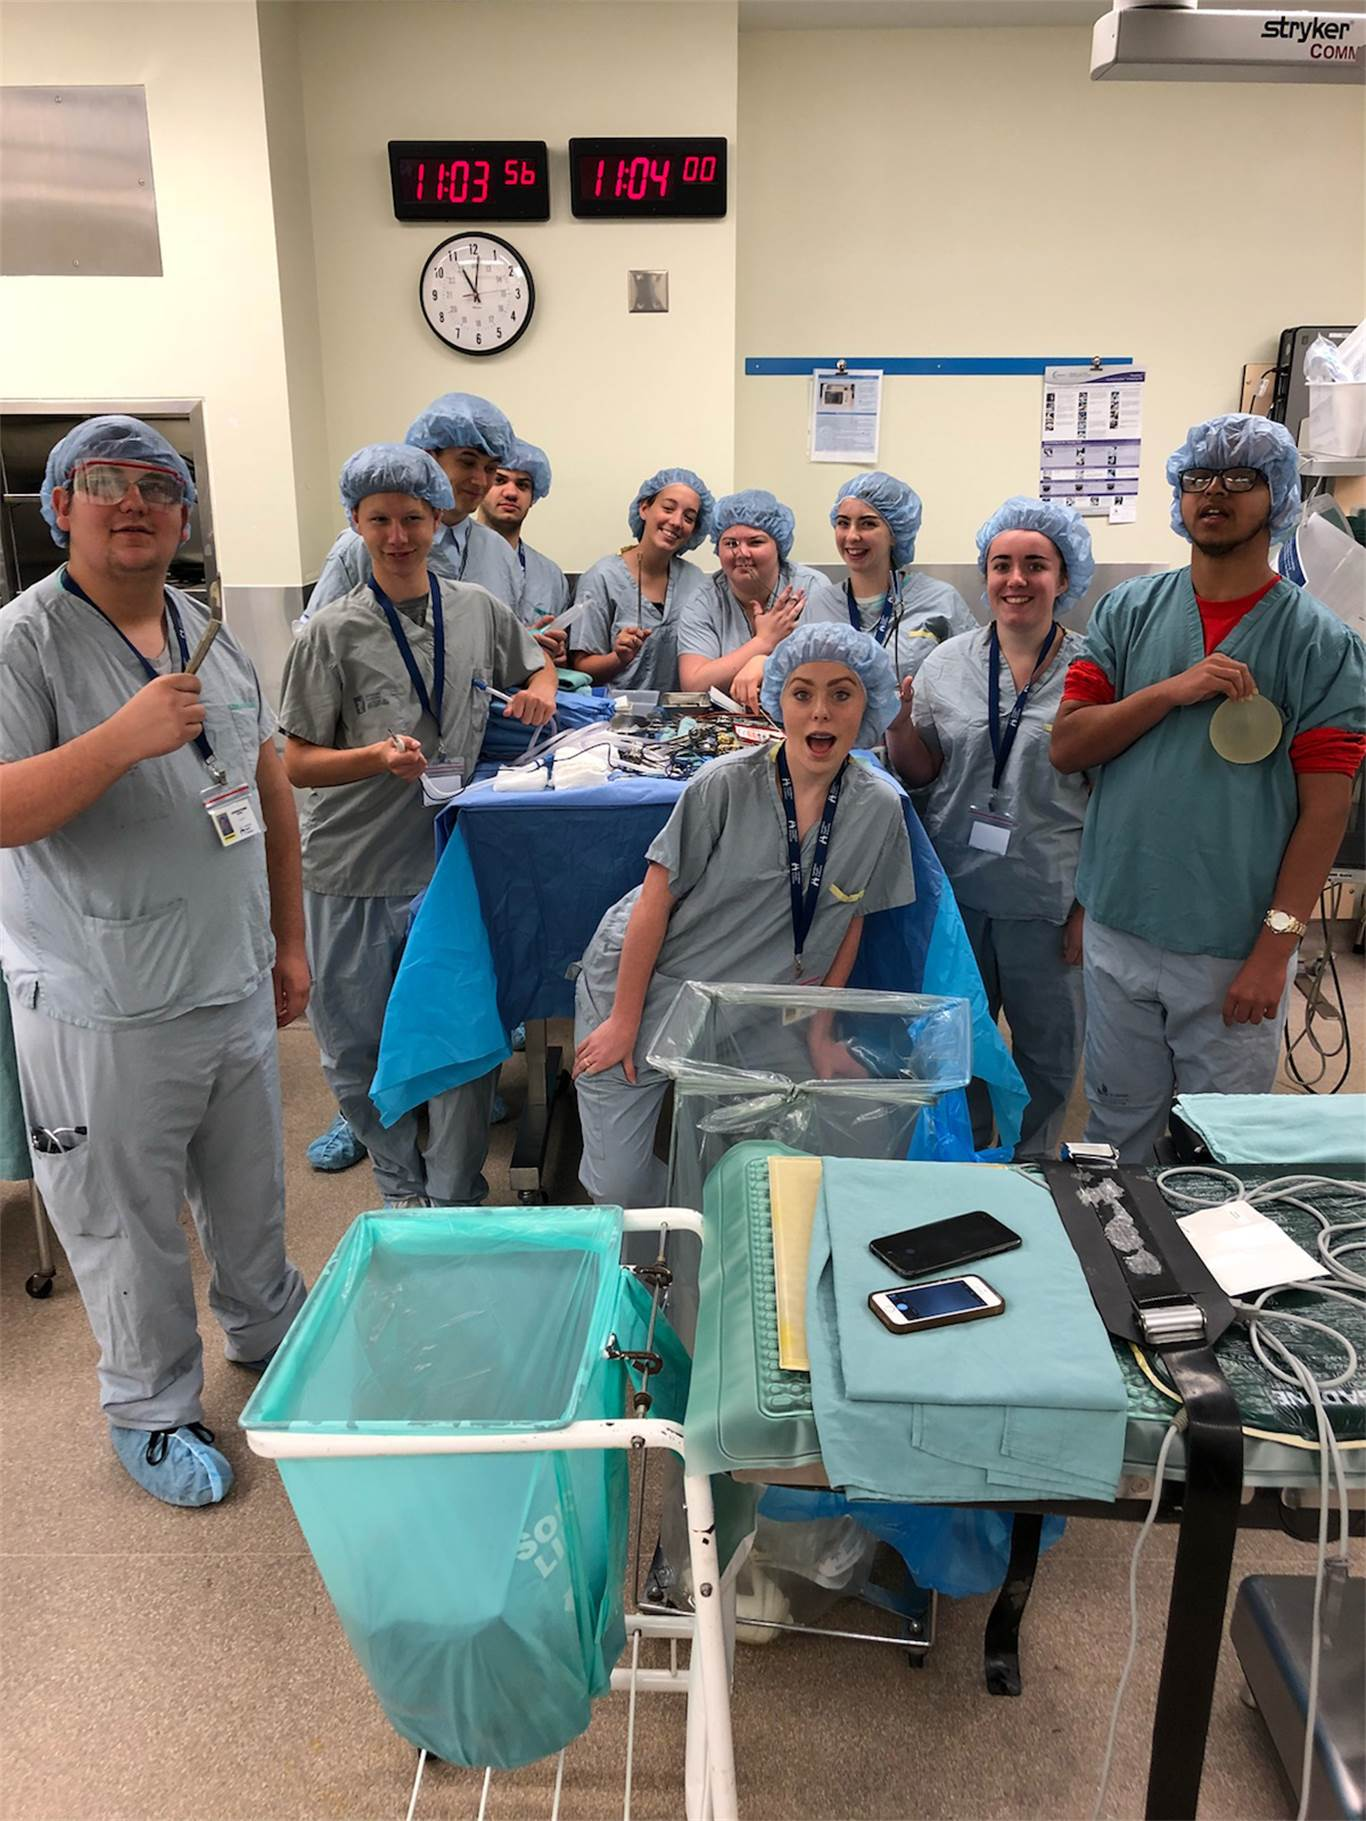 Students in the Summer Pathseekers' Program tour the O.R. at Hamilton General Hospital as one of many experiential learning activities to explore different job opportunities at Hamilton Health Sciences.